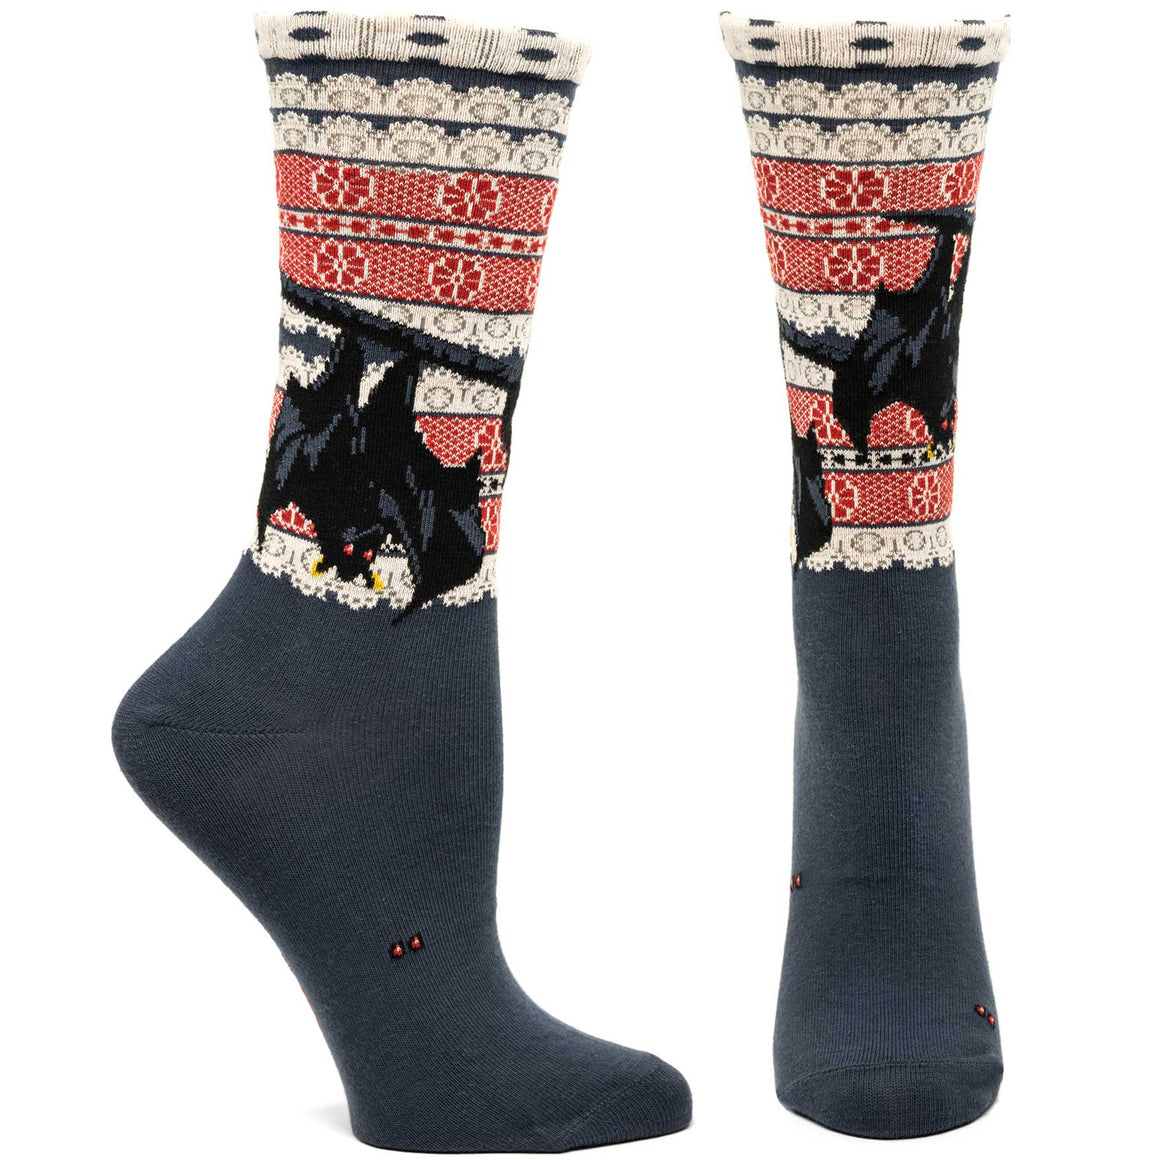 Ozone Design bat out of hell womens novelty sock in grey